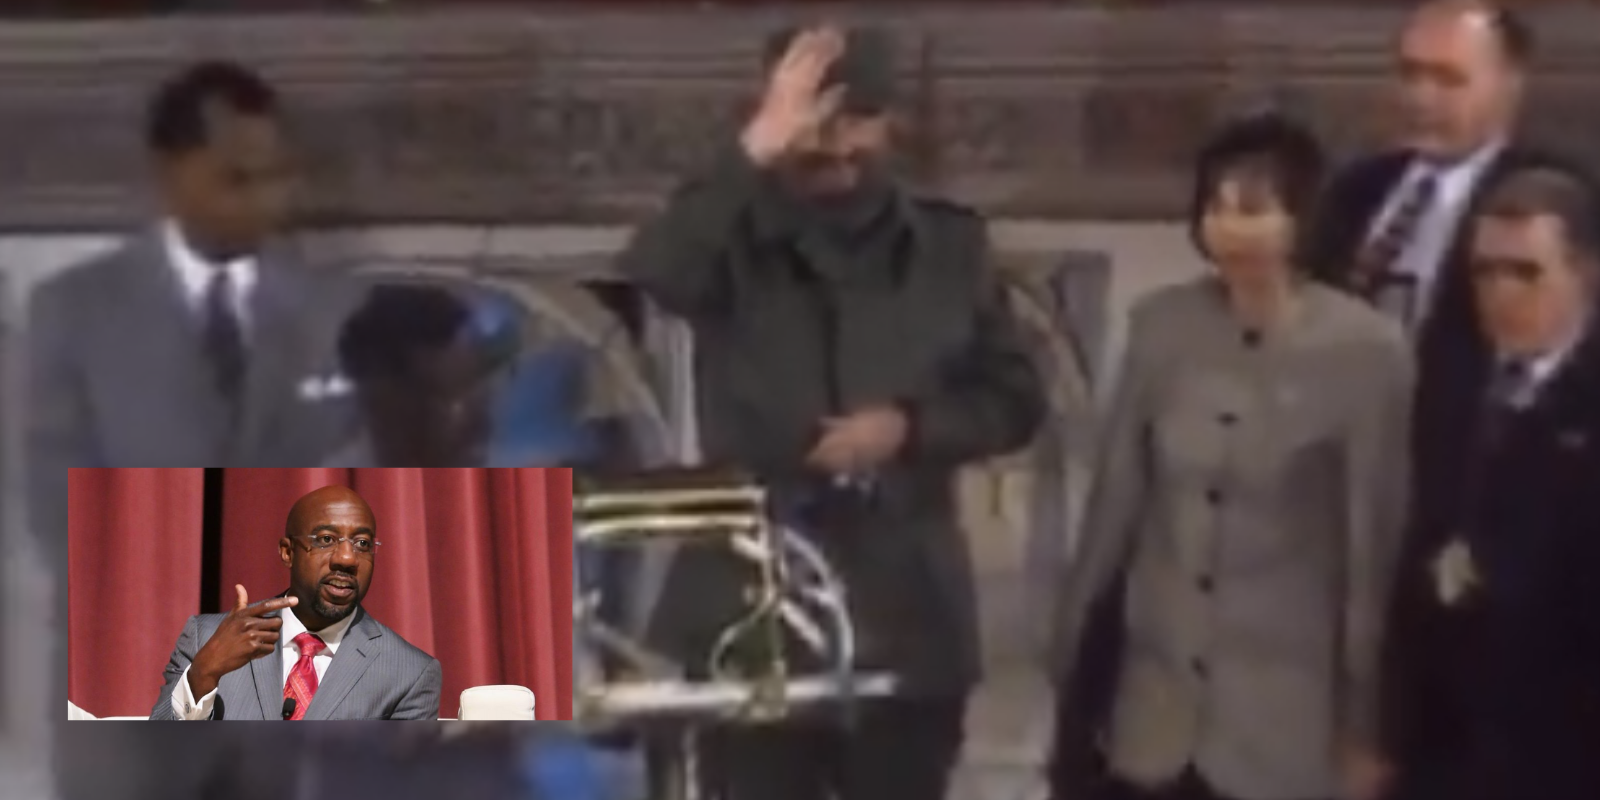 MUST WATCH: Fidel Castro received standing ovation at the church of Democratic Georgia senate candidate Raphael Warnock